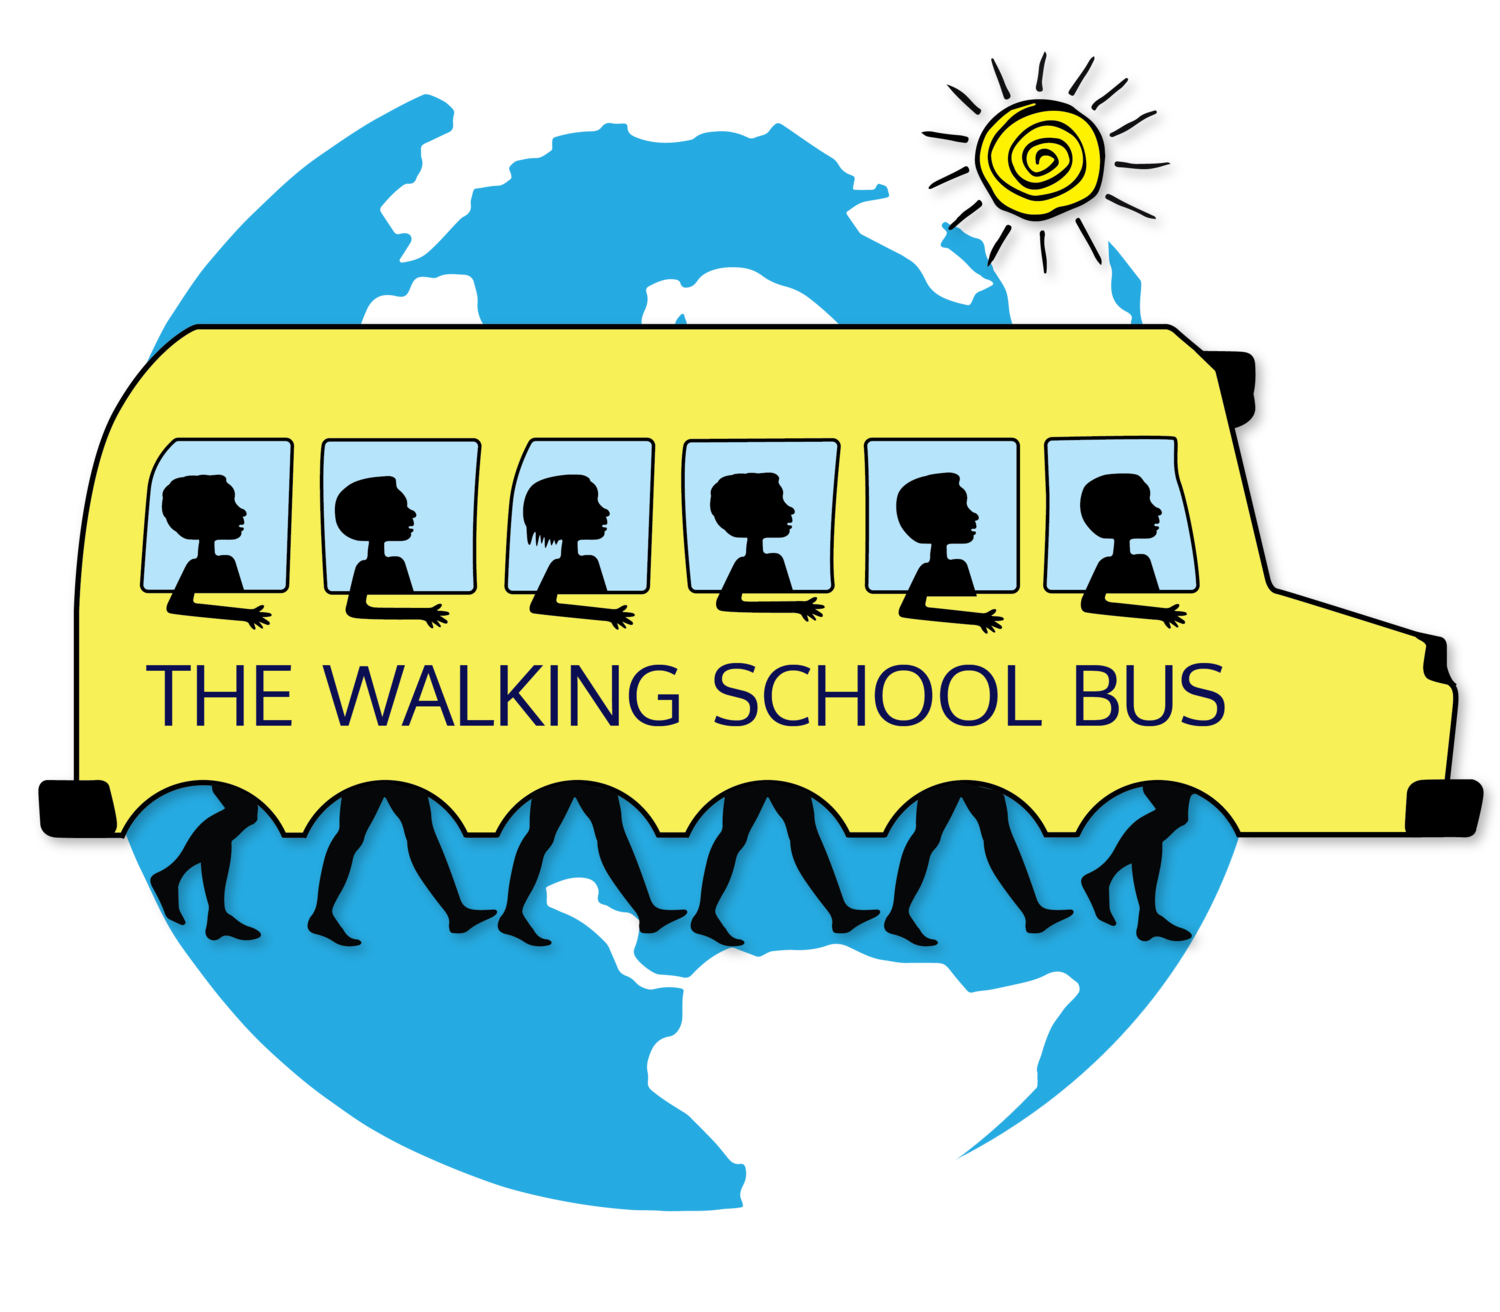 Clipart walking fast paced. Twsb blog the school